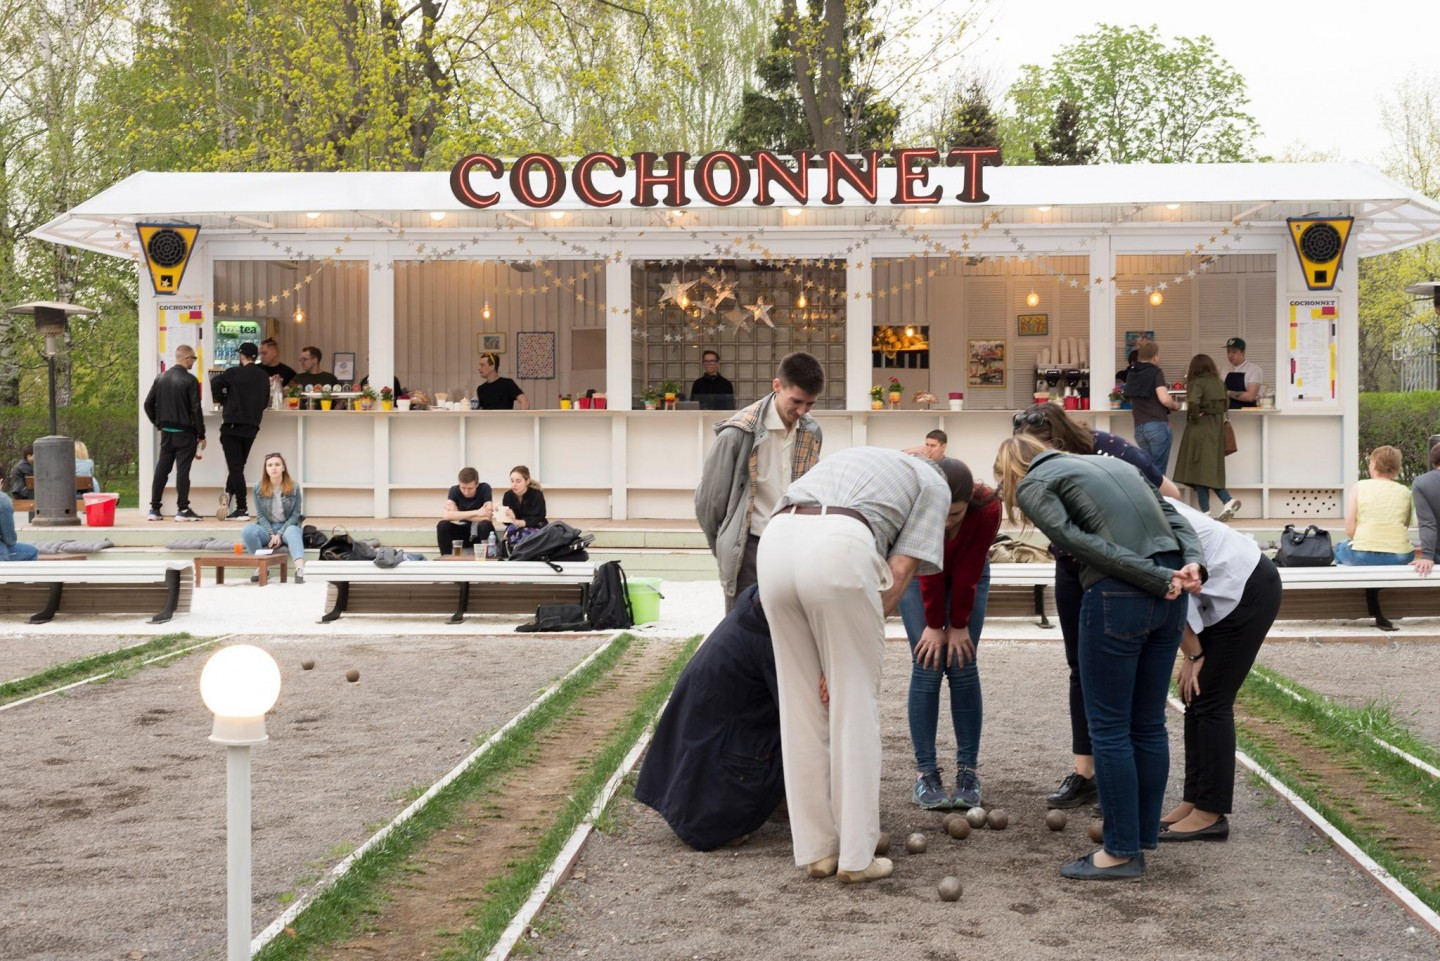 Cochonnet Cafe — ParkSeason